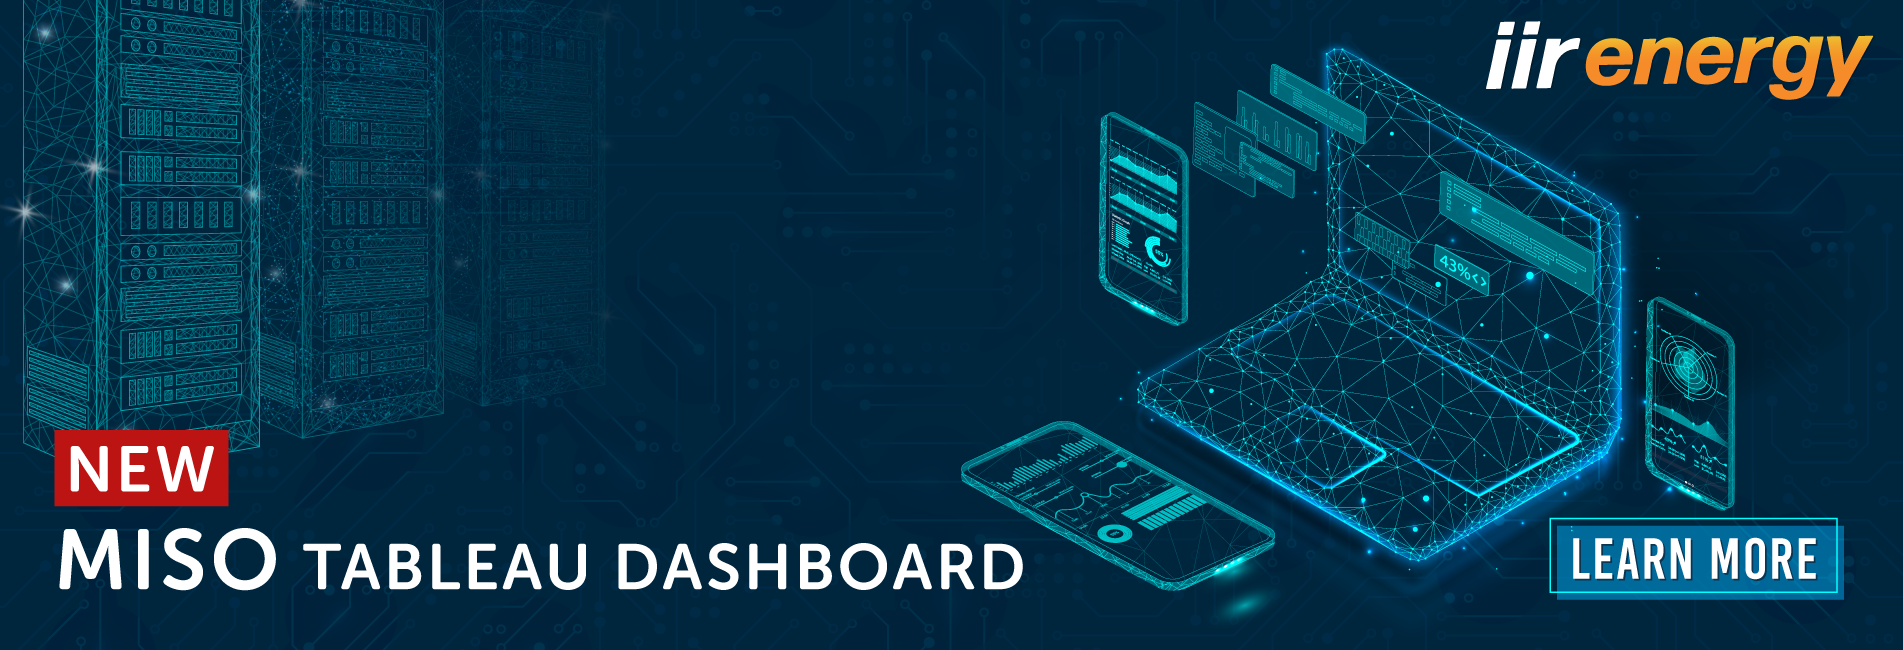 IIR's New MISO Dashboard